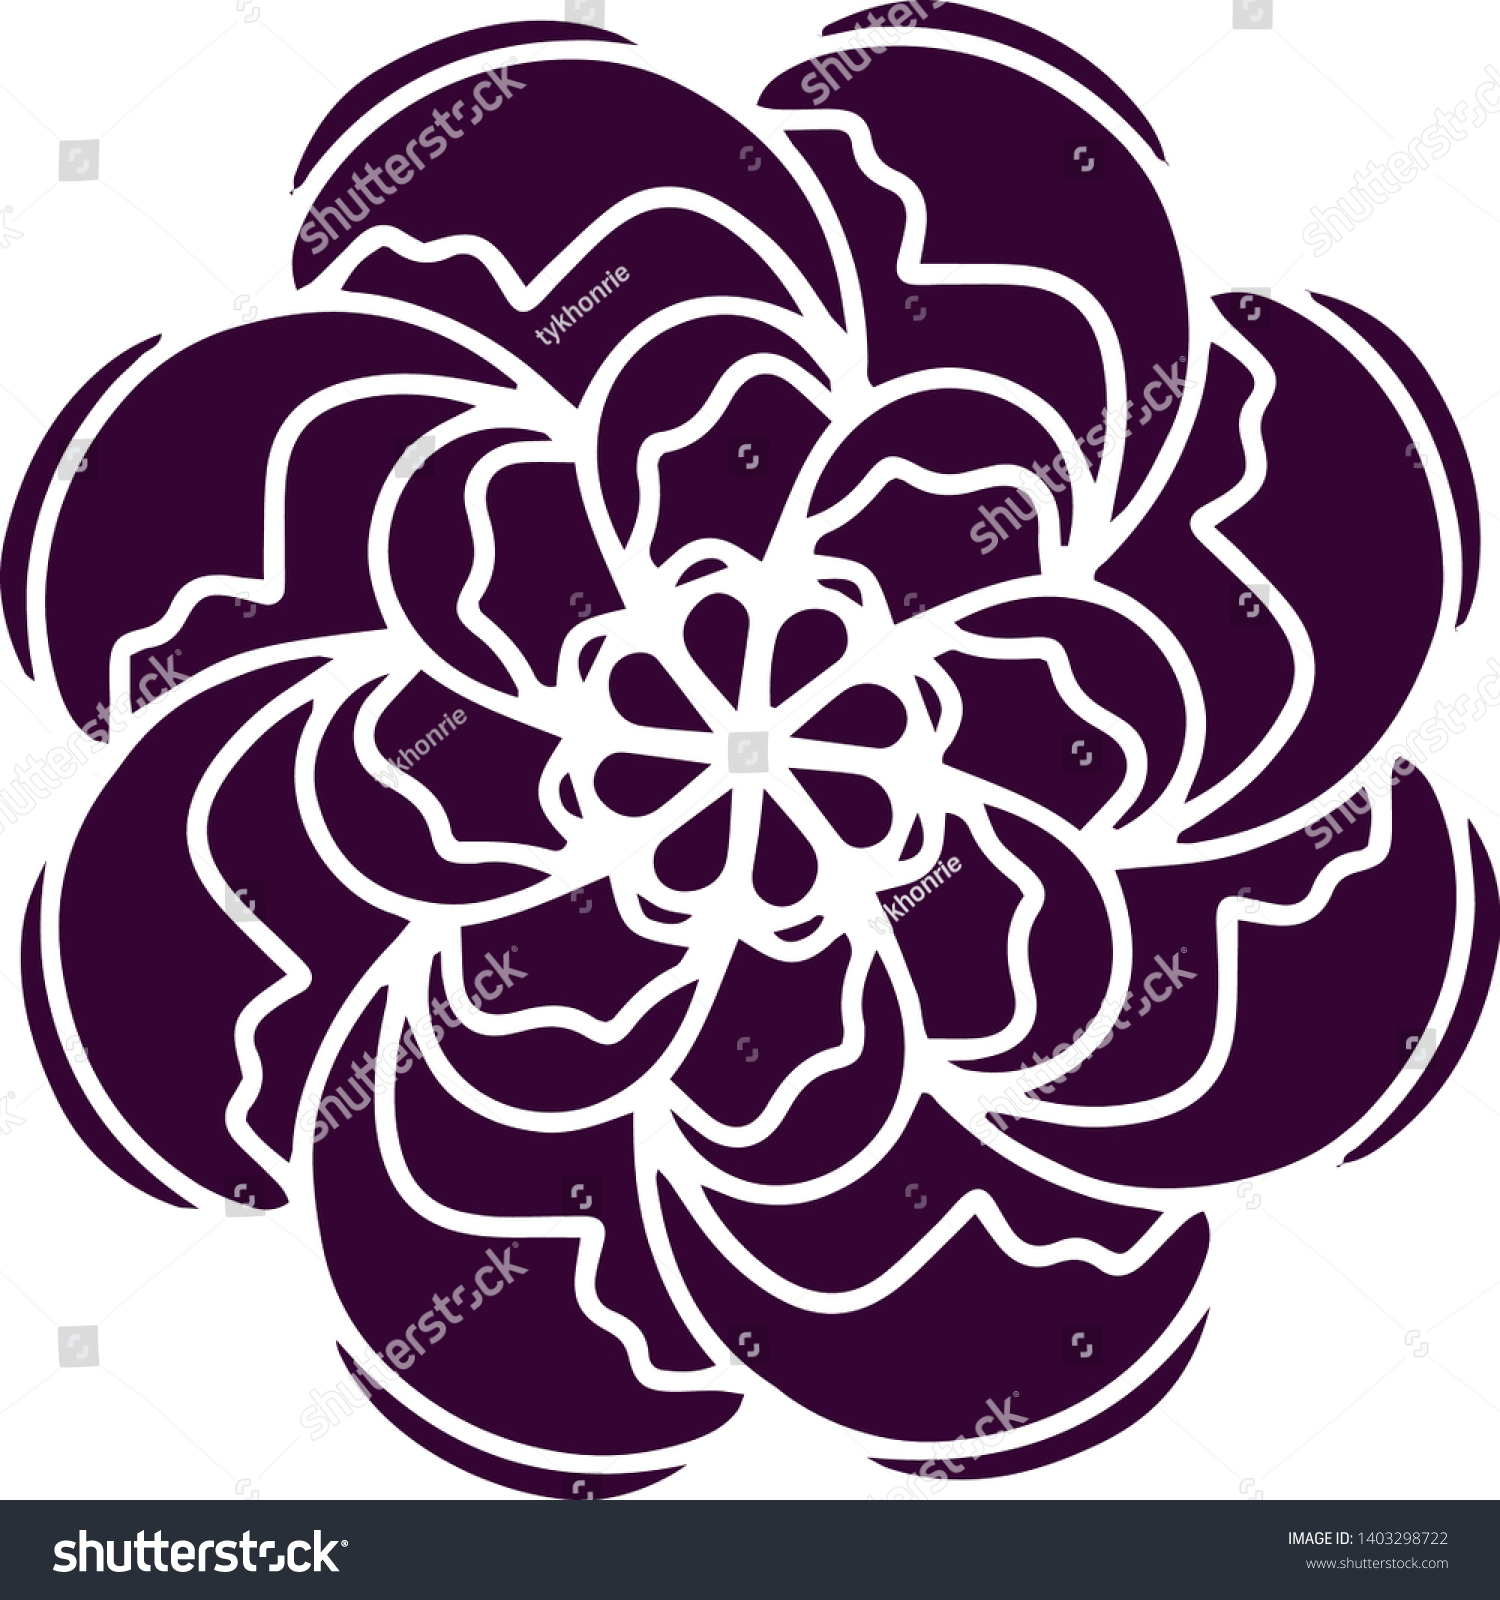 stock-vector-indian-rose-flower-icon-org